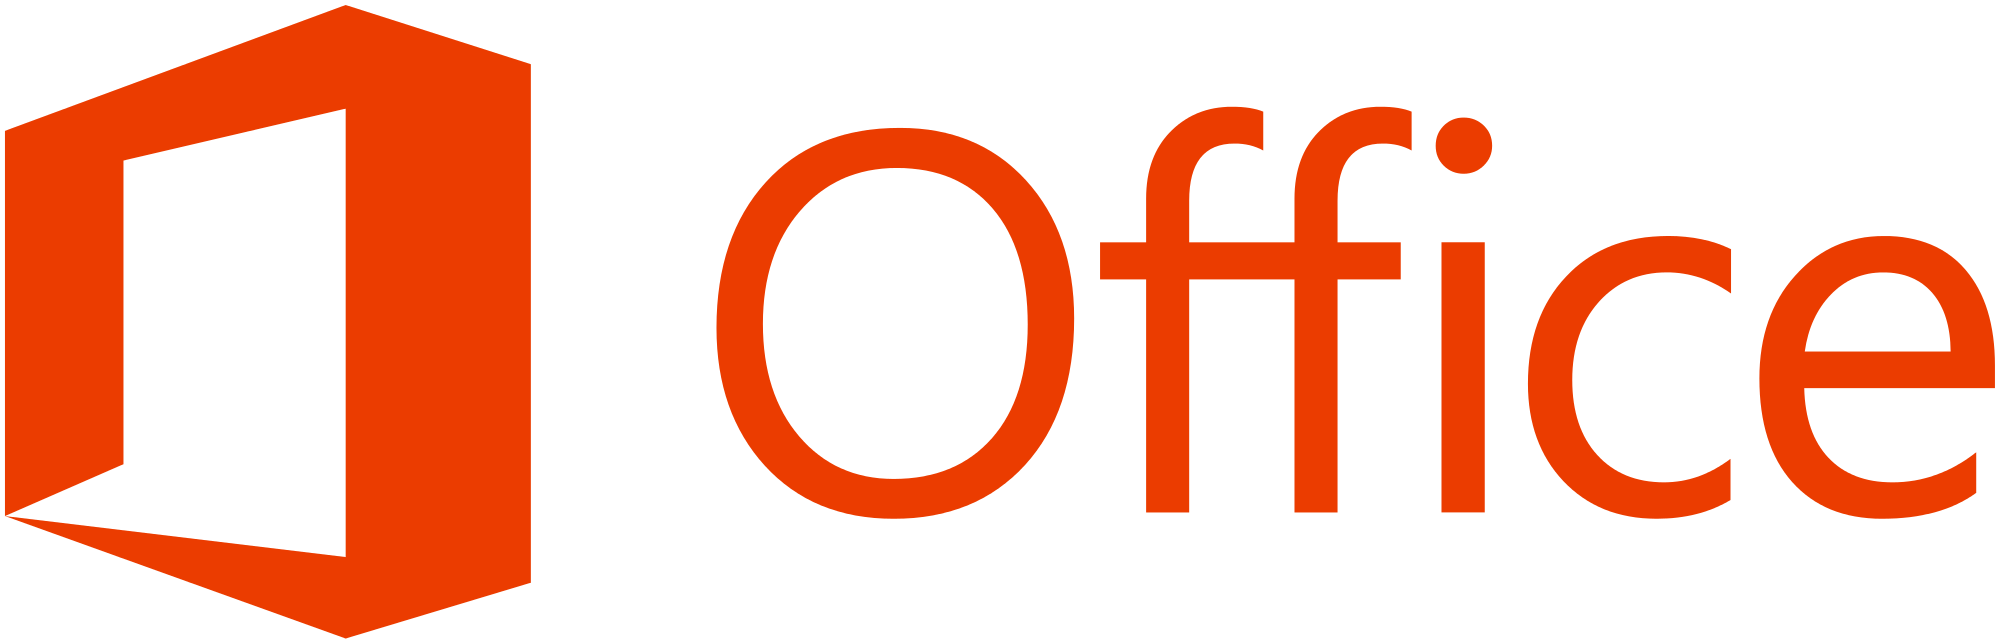 Microsoft_Office_2013_logo_and_wordmark.png